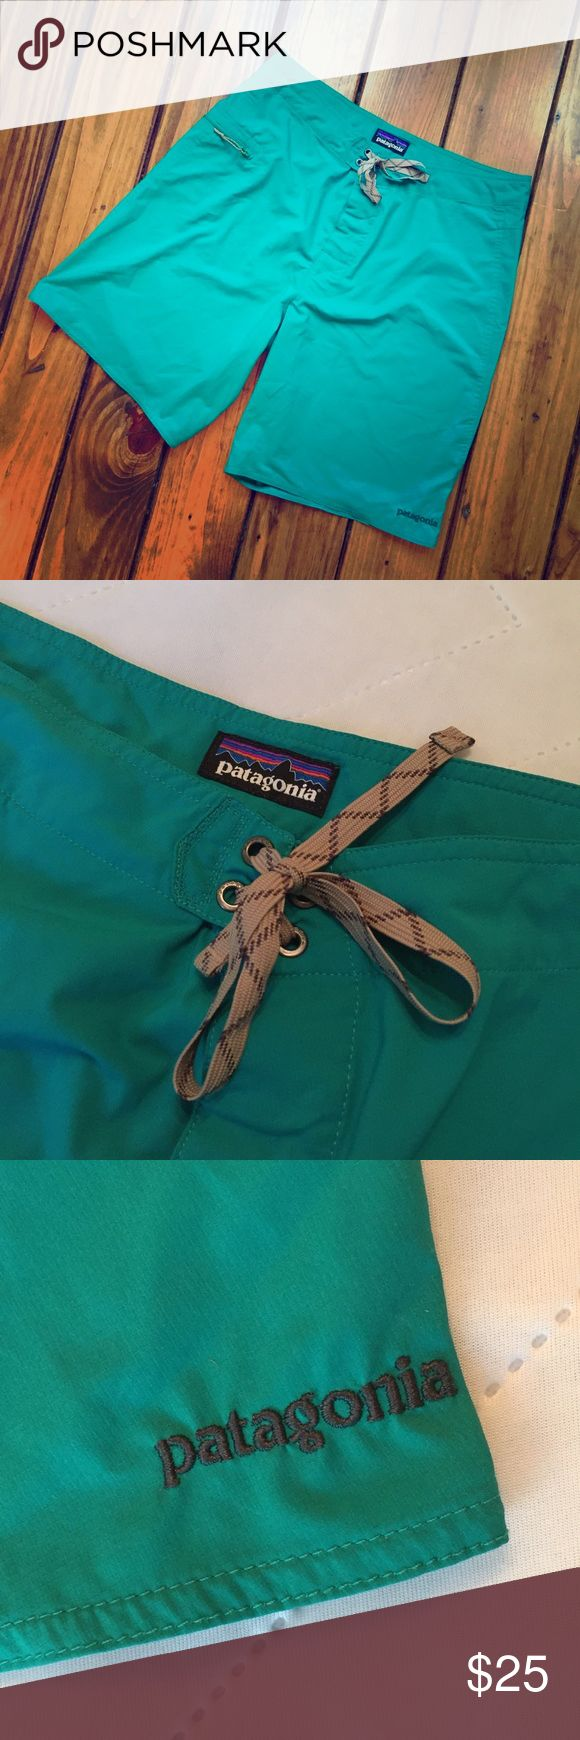 Men's Patagonia Swim Trunks Purchased for my husband. He took off the tags and never wore them, so they are like new. From a smoke-free, pet-free home. Price is firm unless bundled. Patagonia Swim Swim Trunks